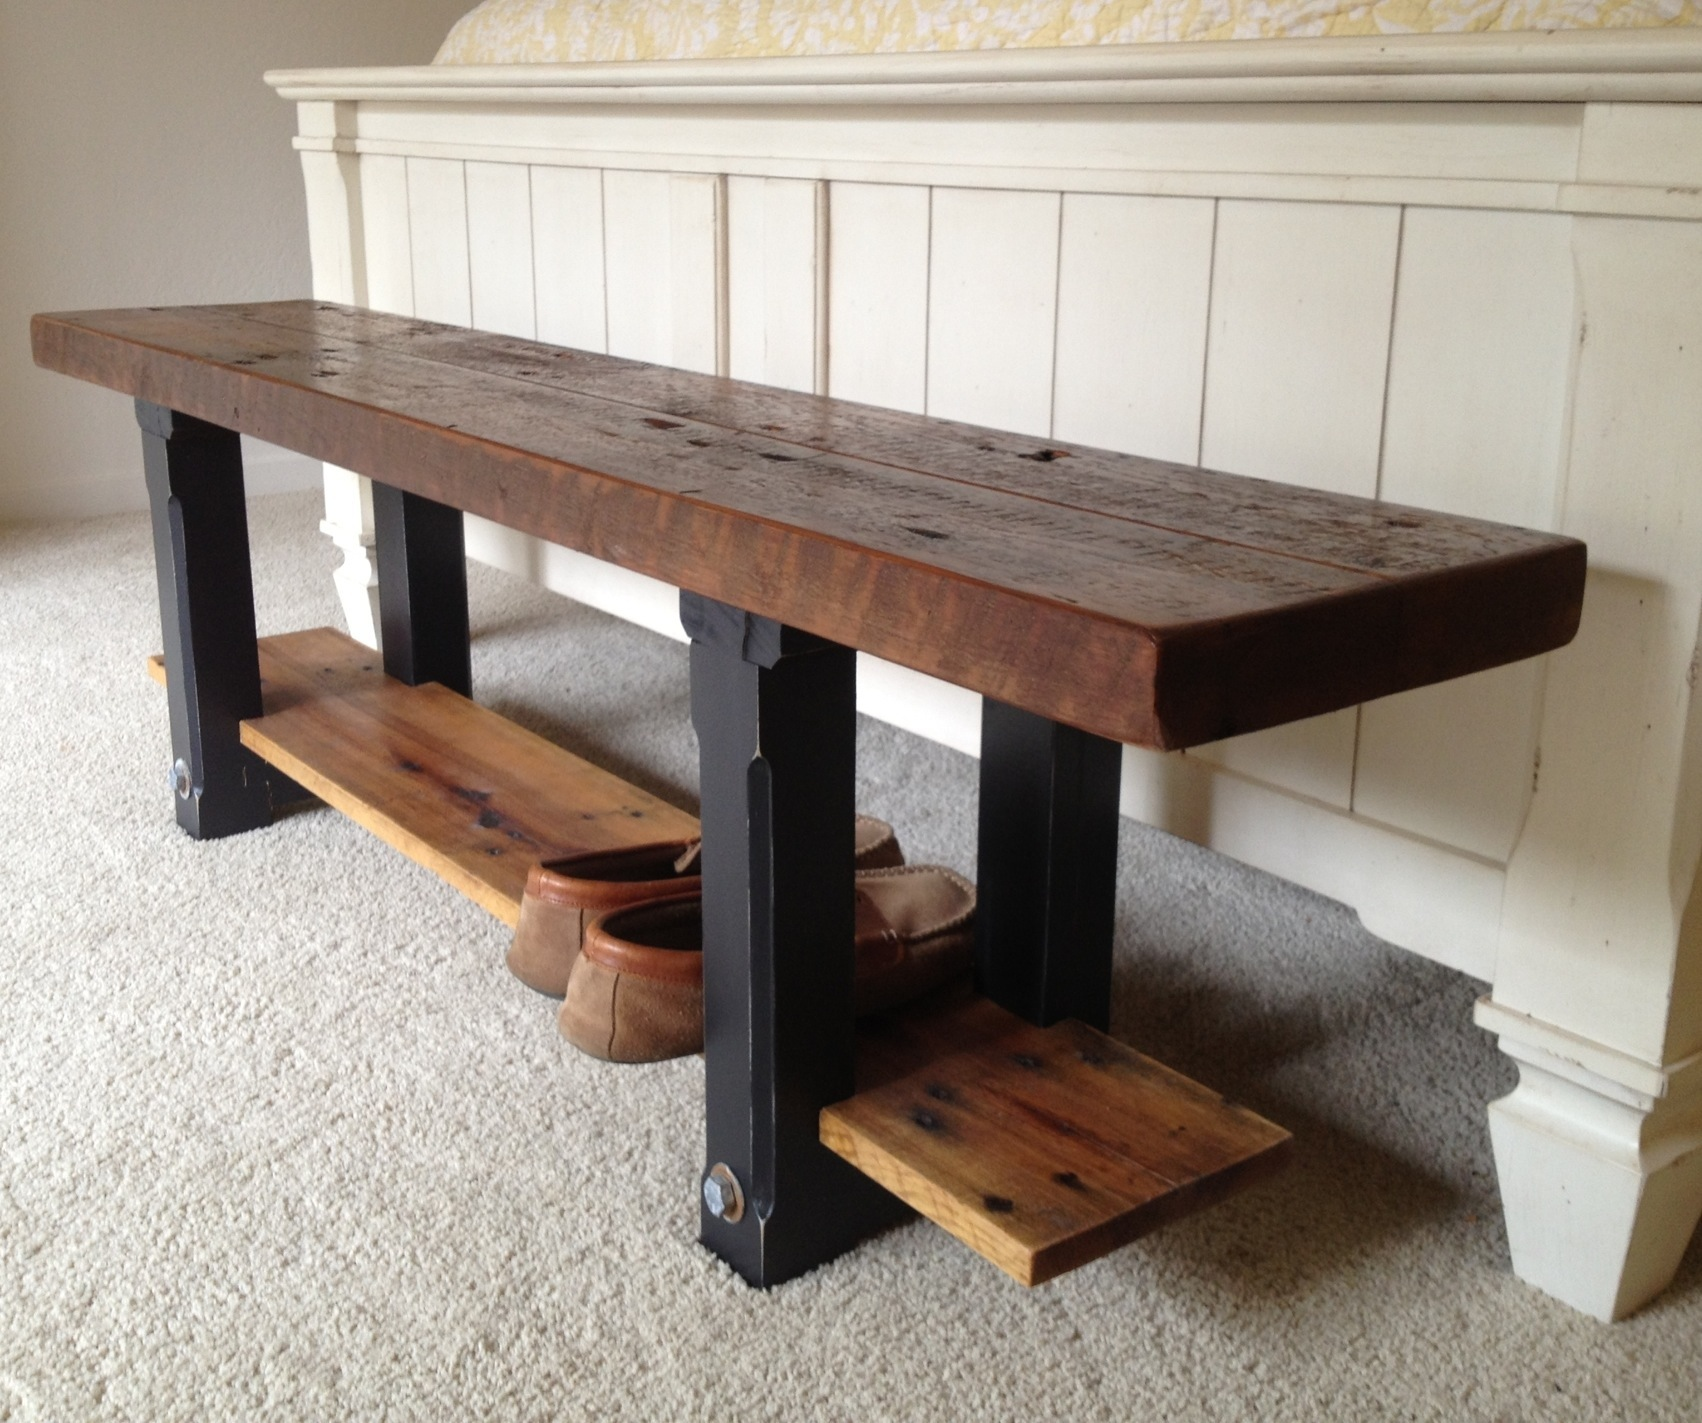 Reclaimed Wood Bench The Coastal Craftsman - Refurbished wood table tops